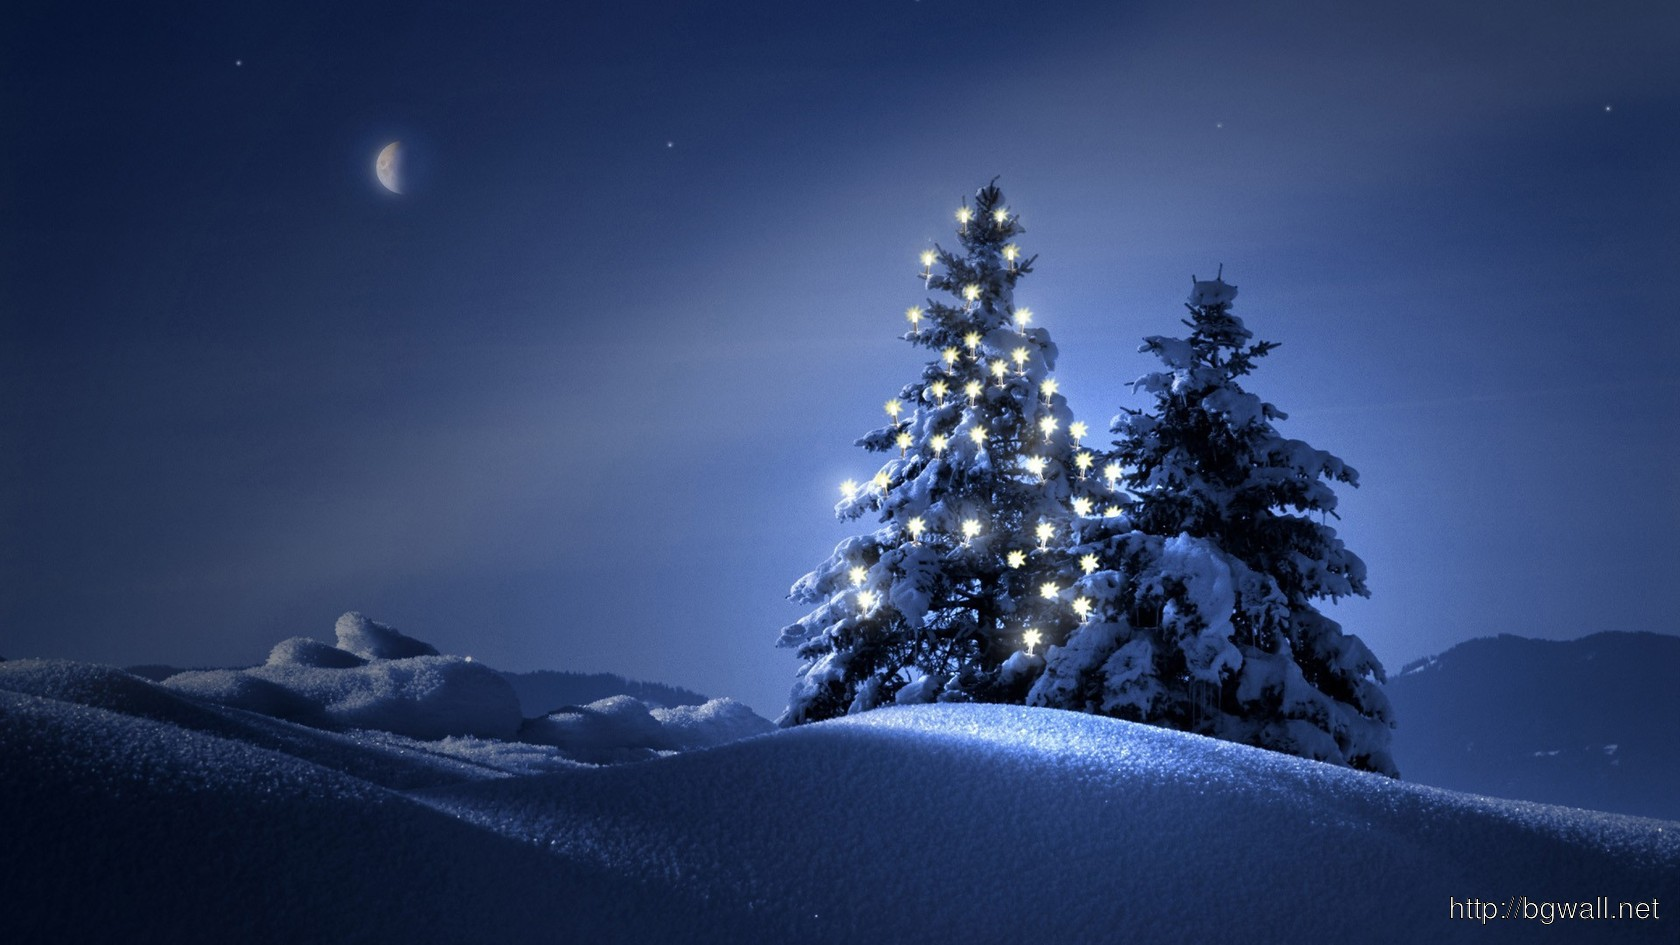 Christmas Trees In The Snow Wallpaper 4058 – Background ...